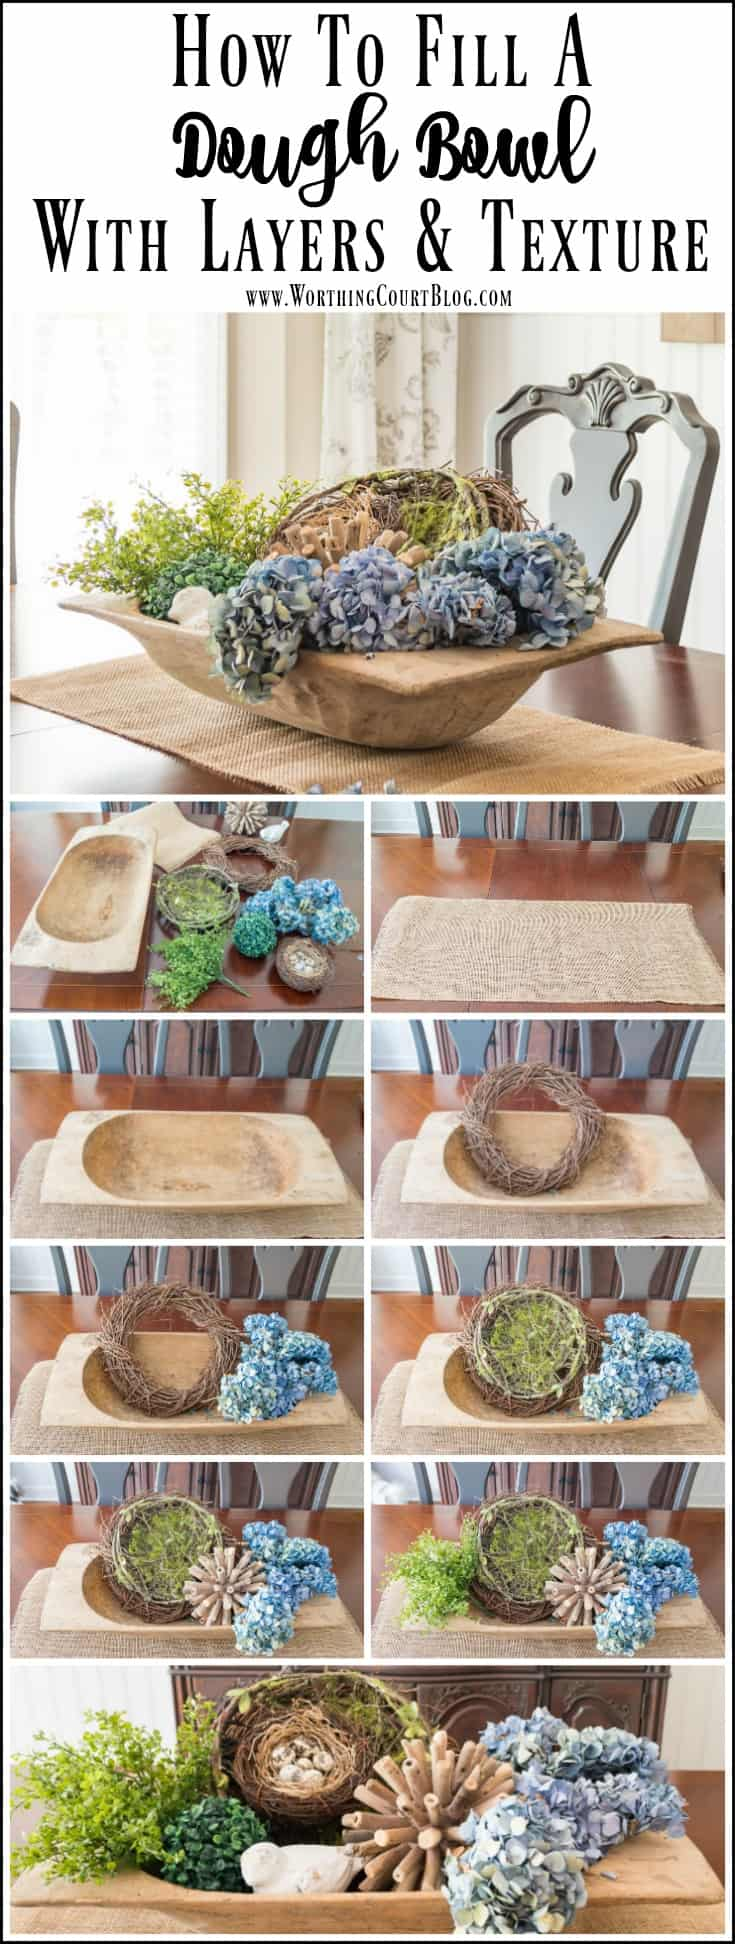 Step by step photos of how to create a seasonal dough bowl display.